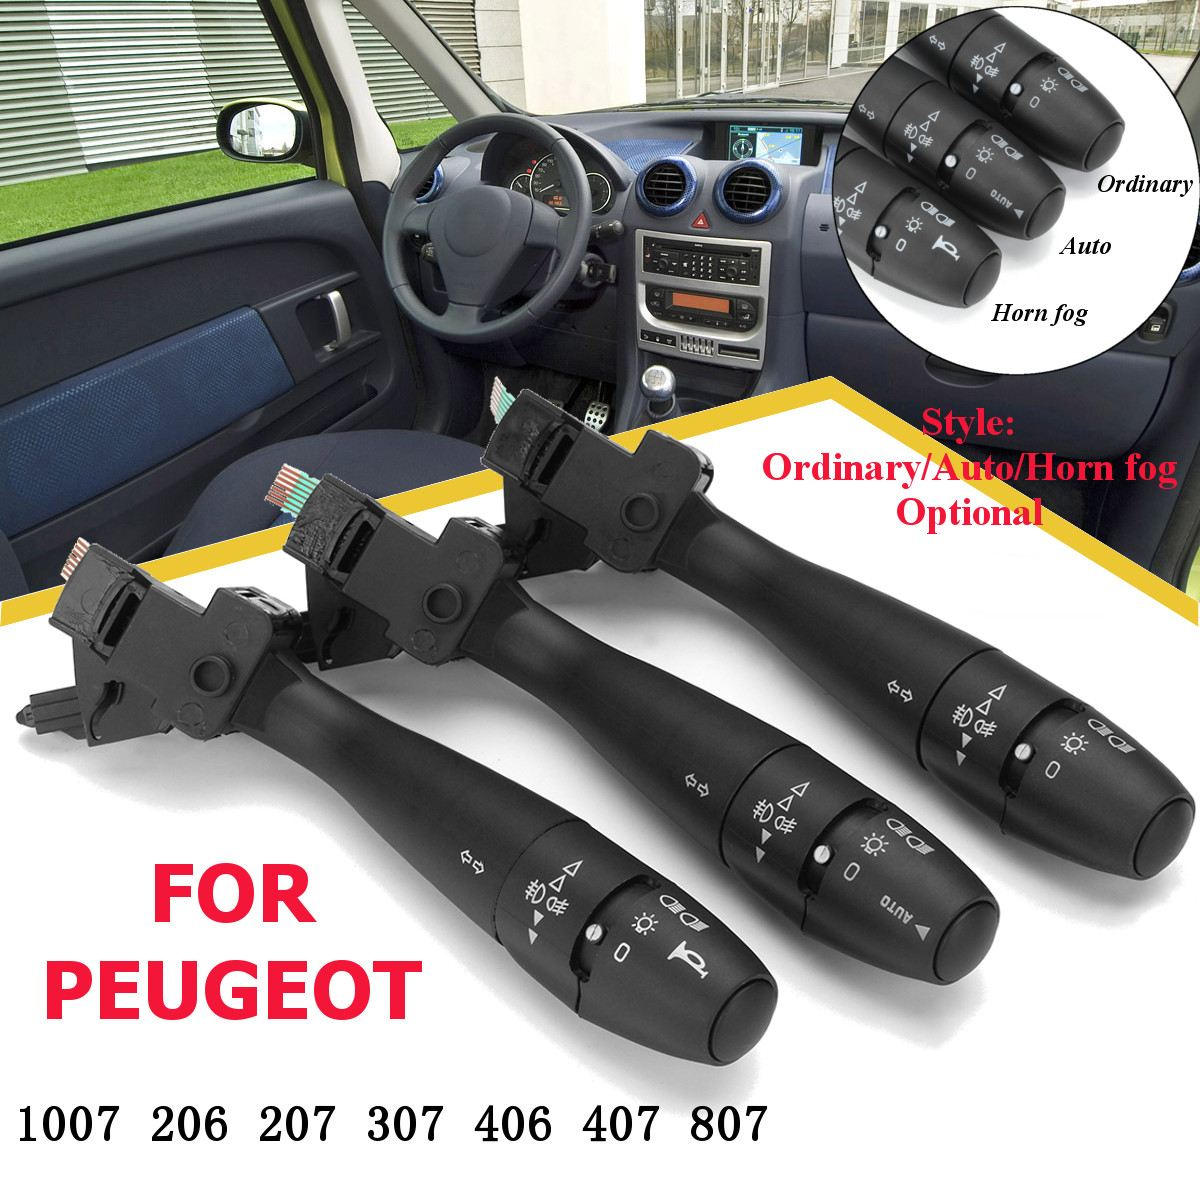 96477533XT Turn Signal Indicator Switch Horn/Auto For PEUGEOT 1007 206 207 307 406 407 807